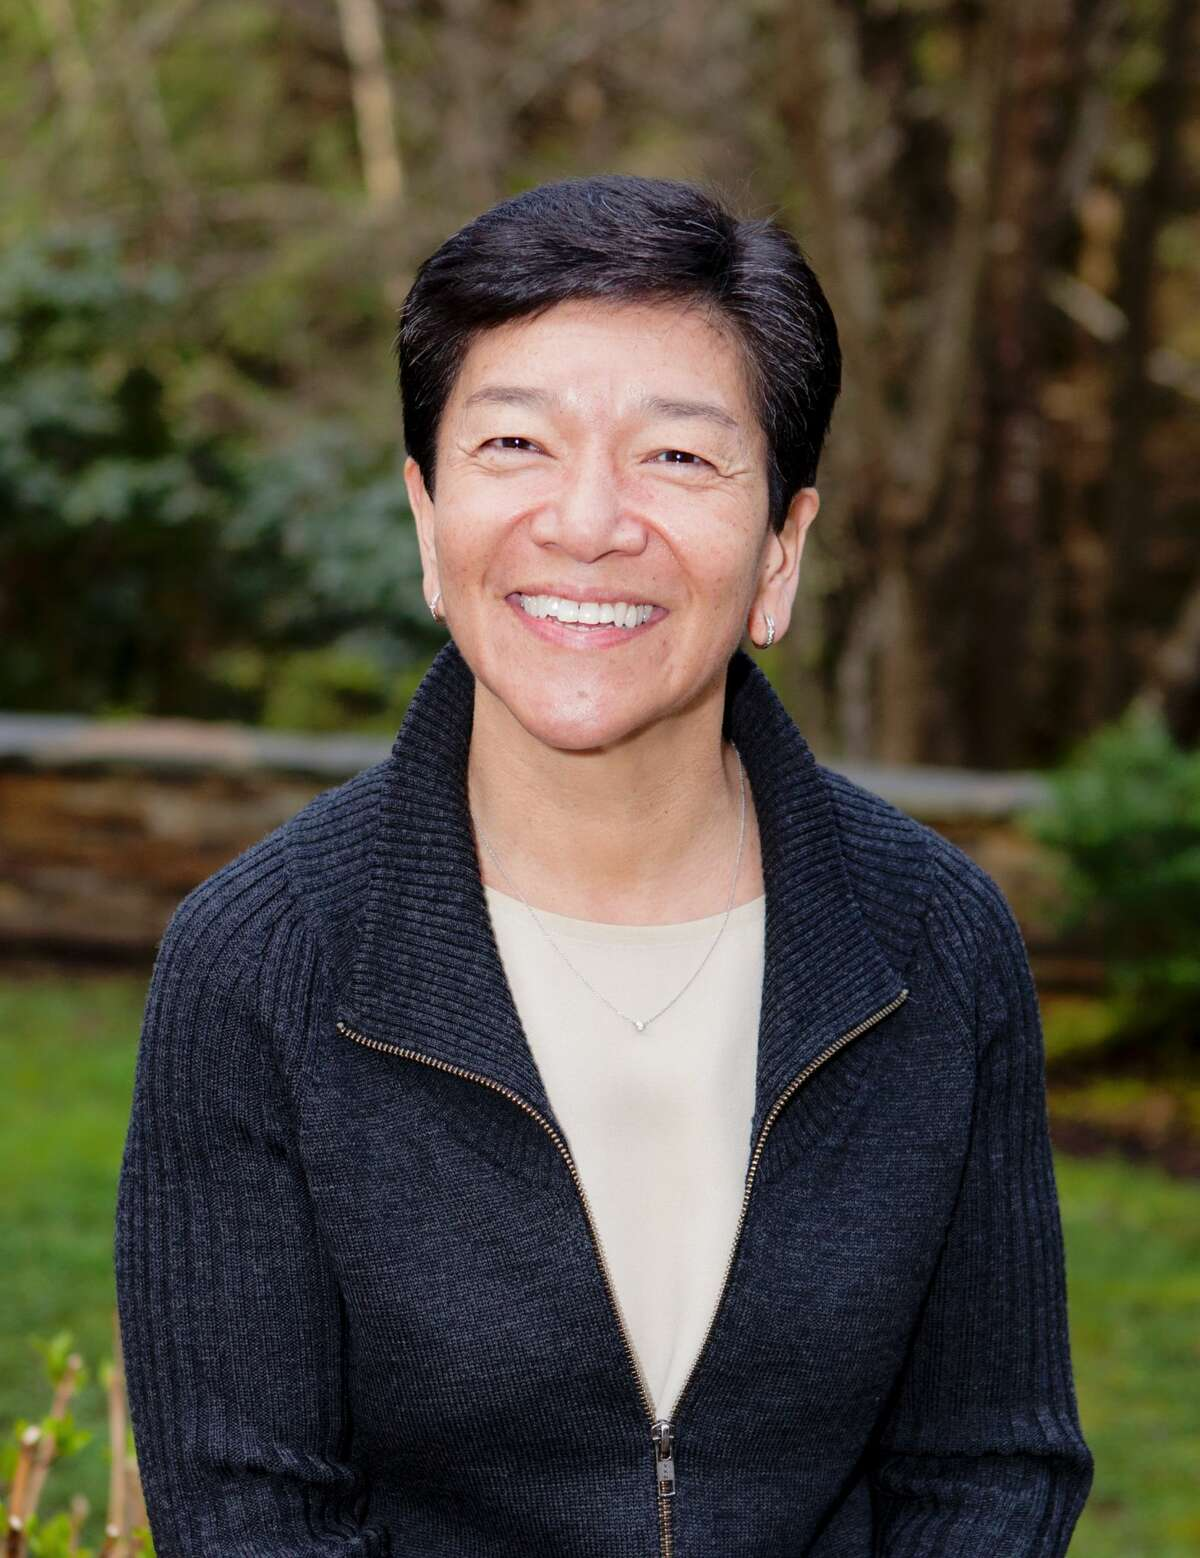 Mary Yu -- Supreme Court justice, position 1: King County Bar Association rating: Exceptionally Well Qualified; Washington Association of Prosecuting Attorneys rating: Exceptionally Well Qualified; Stranger endorsement? Yes; Seattle Times endorsement? Yes